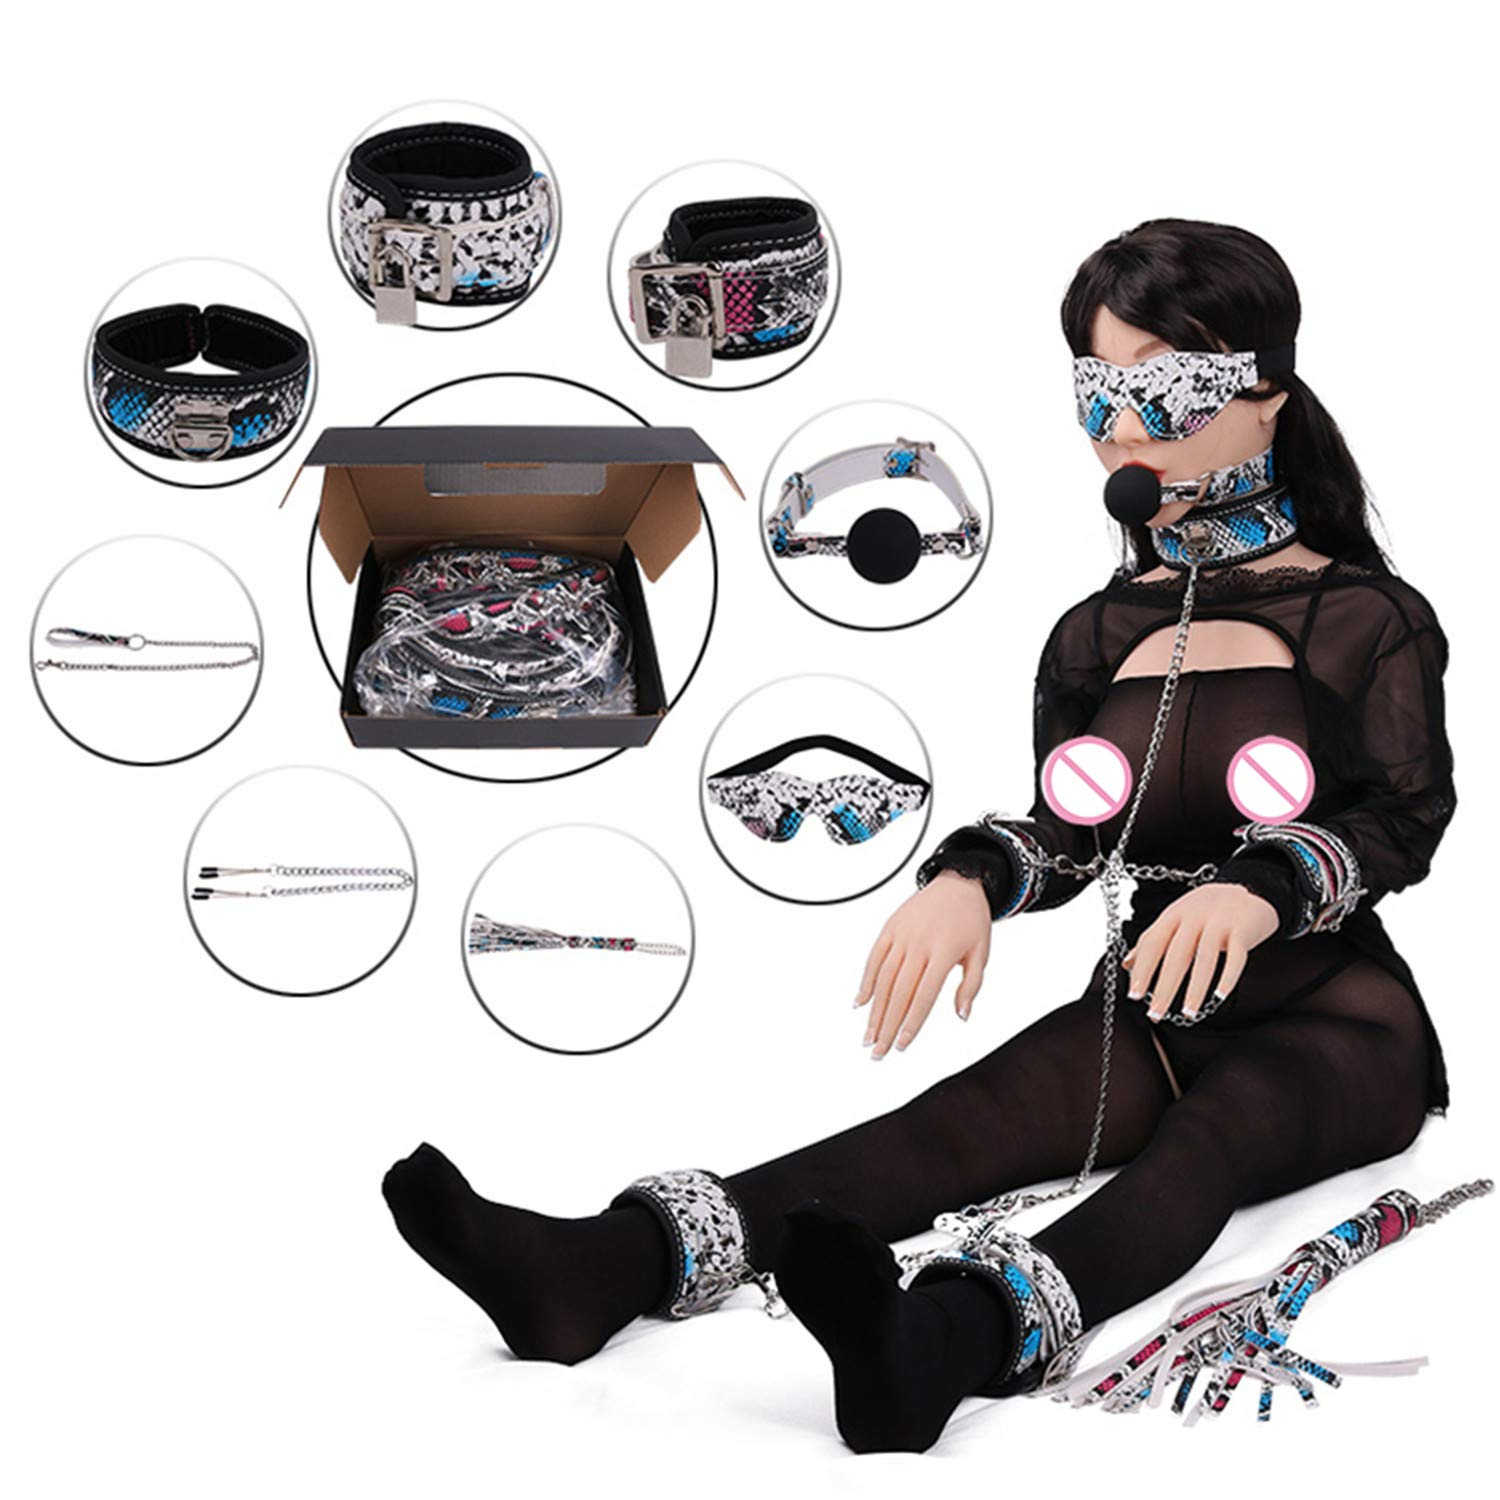 Adult Game 8 Pcs Set Handcuffs Gag Whip Collar Erotic Toy Pu Leather Fetish Sex Bondage Restraint Sex Toy for Couple Sex Product